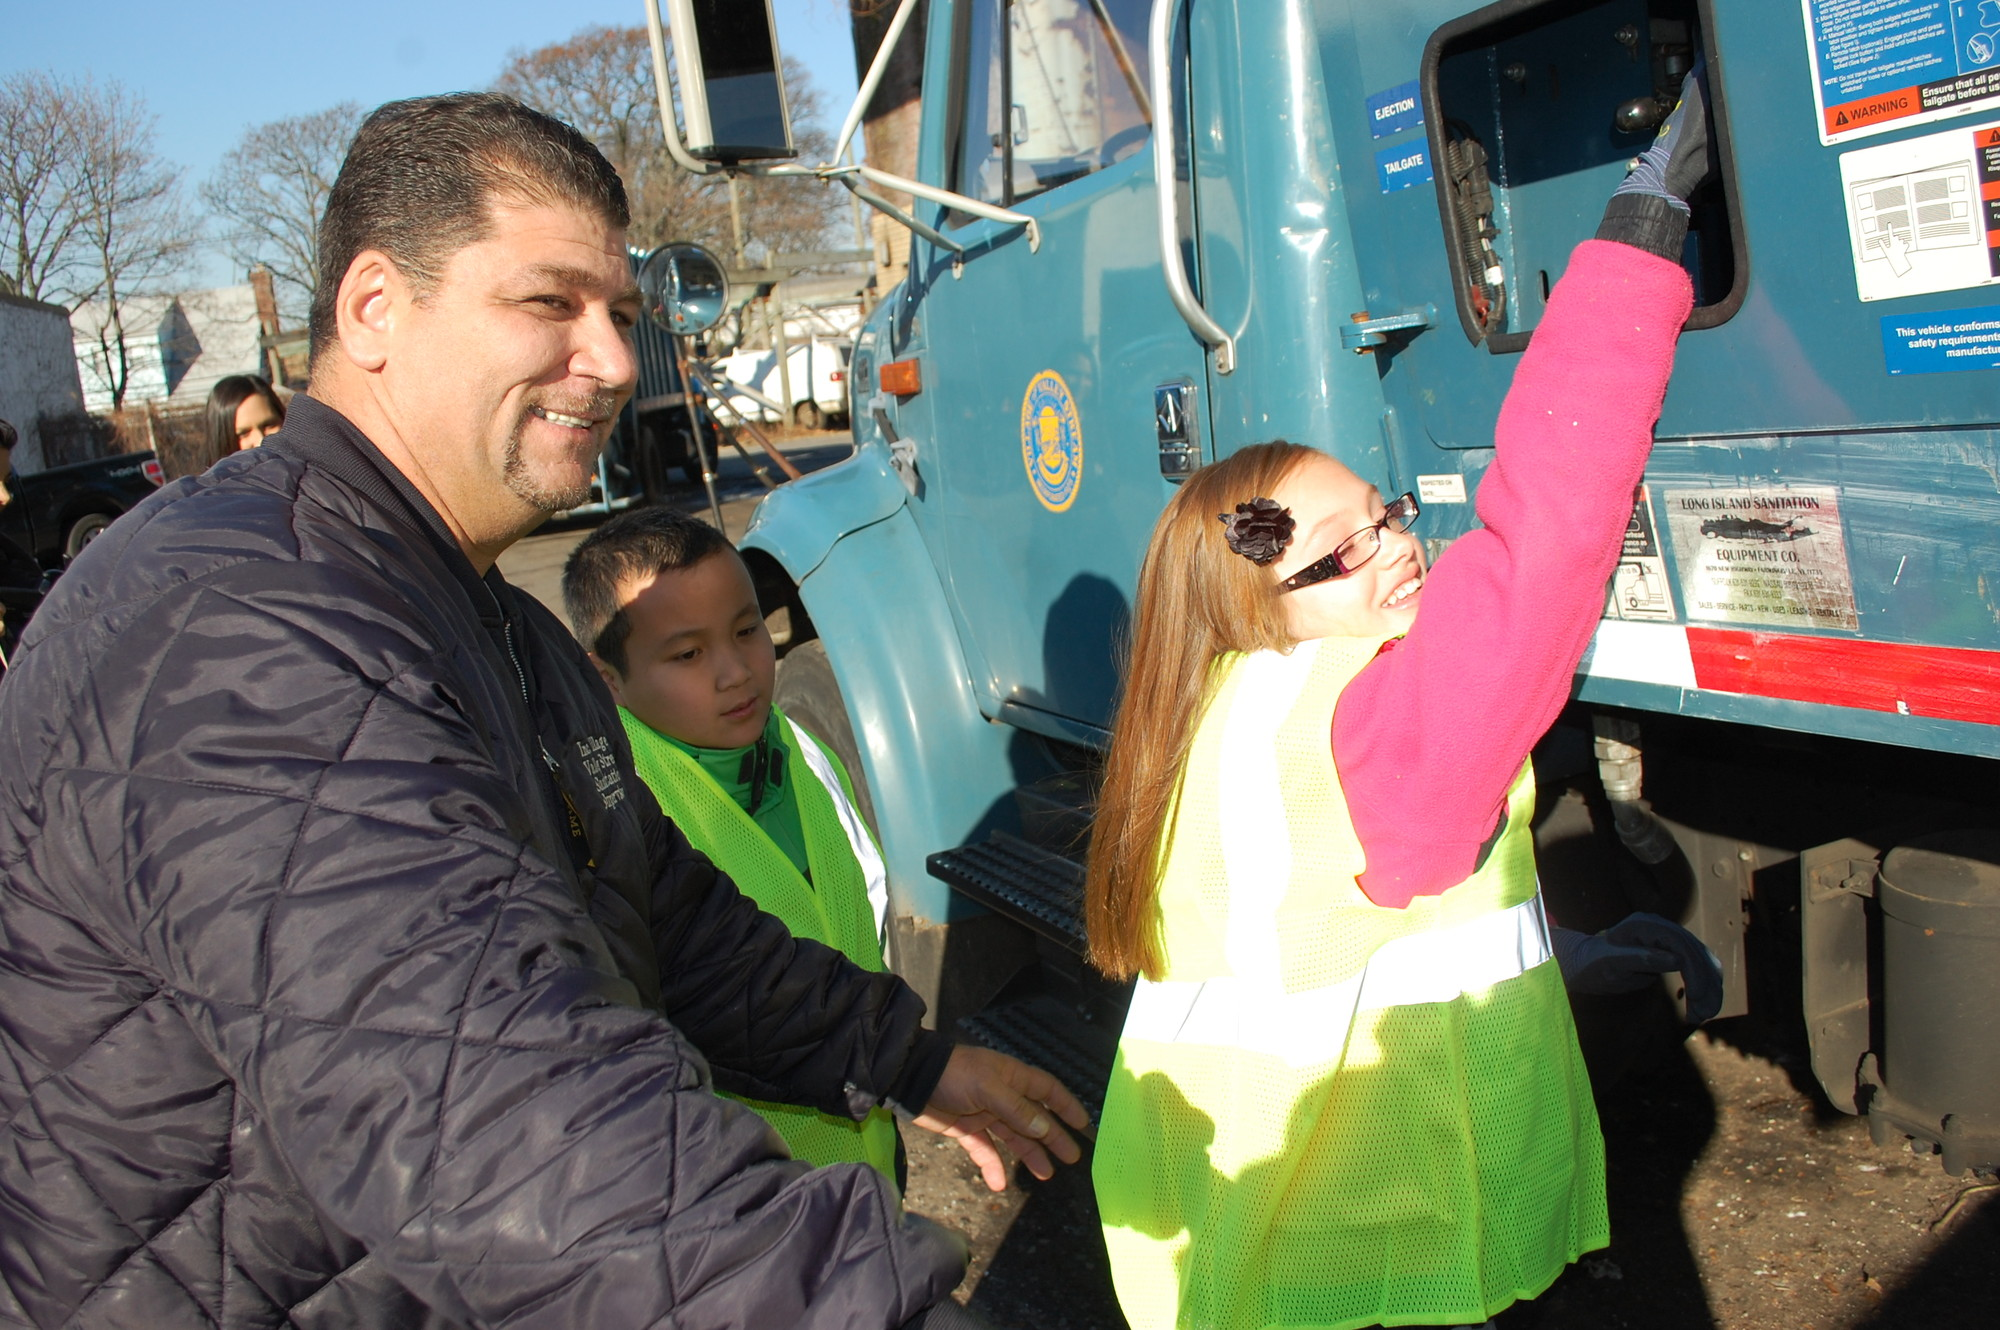 Wayne Mastrangelo enjoyed taking part in the annual Mayor for a Day program, where he showed contest winners how to operate a garbage truck.